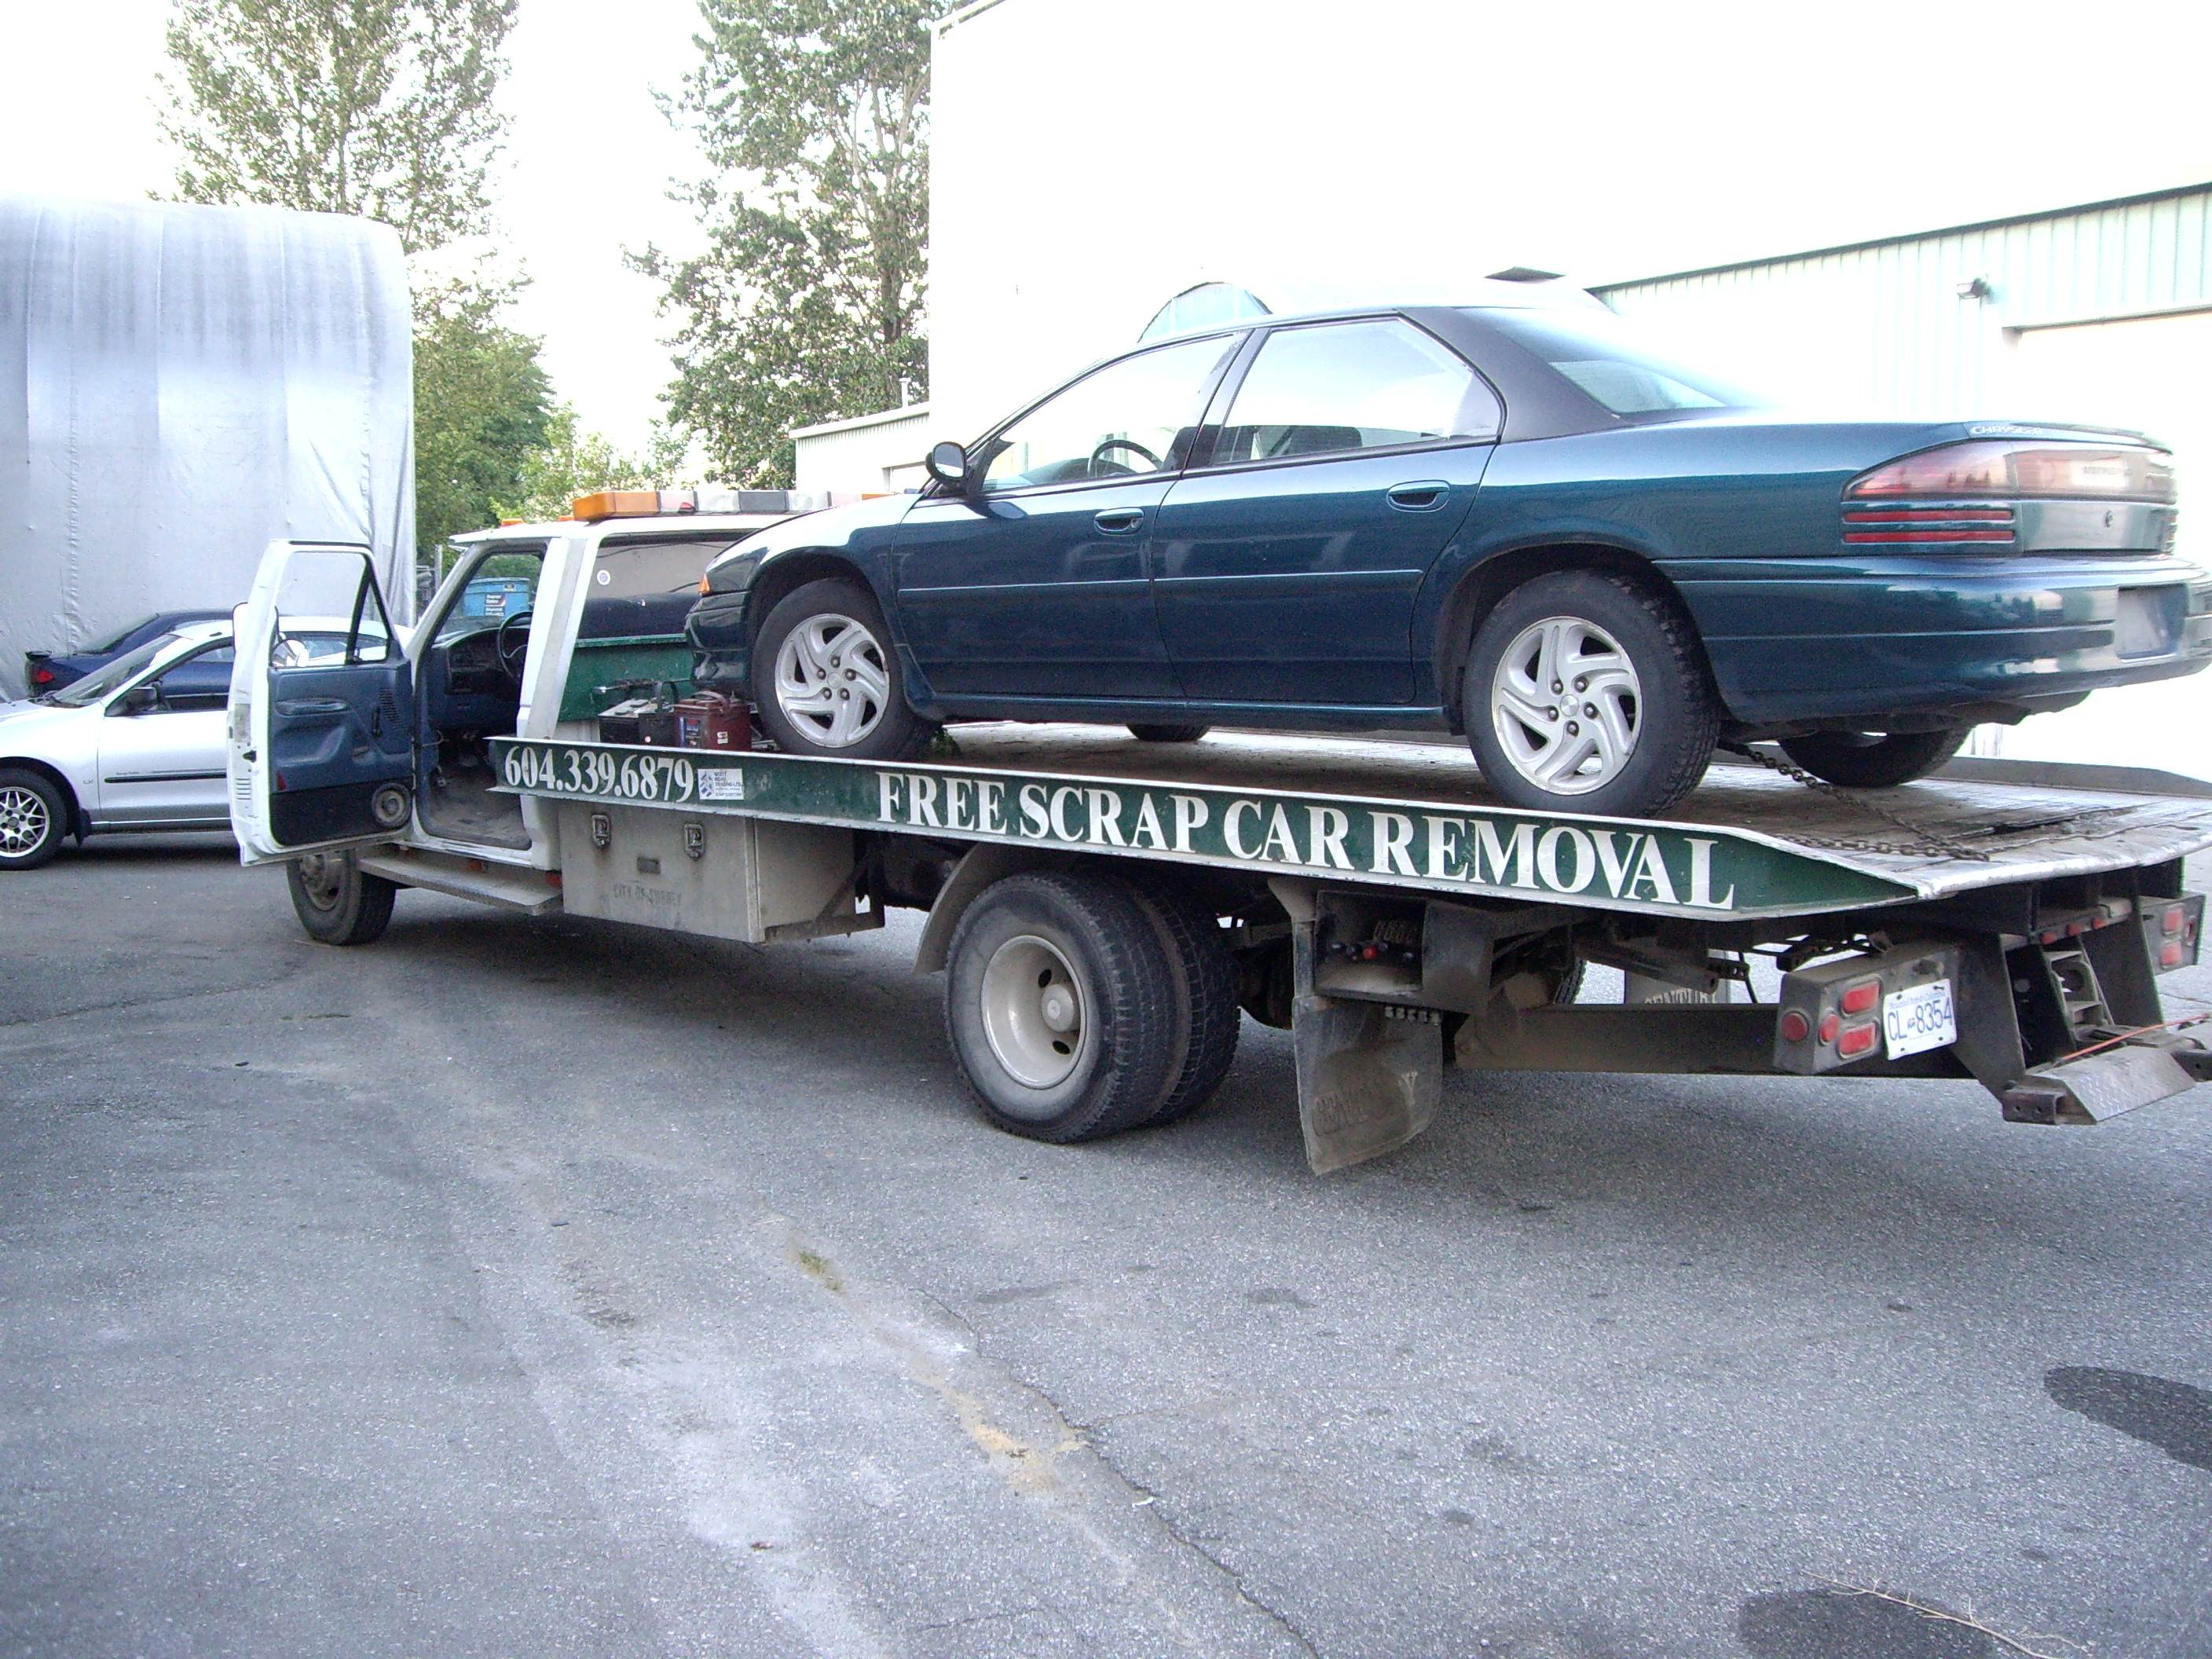 Scrap Car Removal Delta\' Articles at Scrap 4 Cash